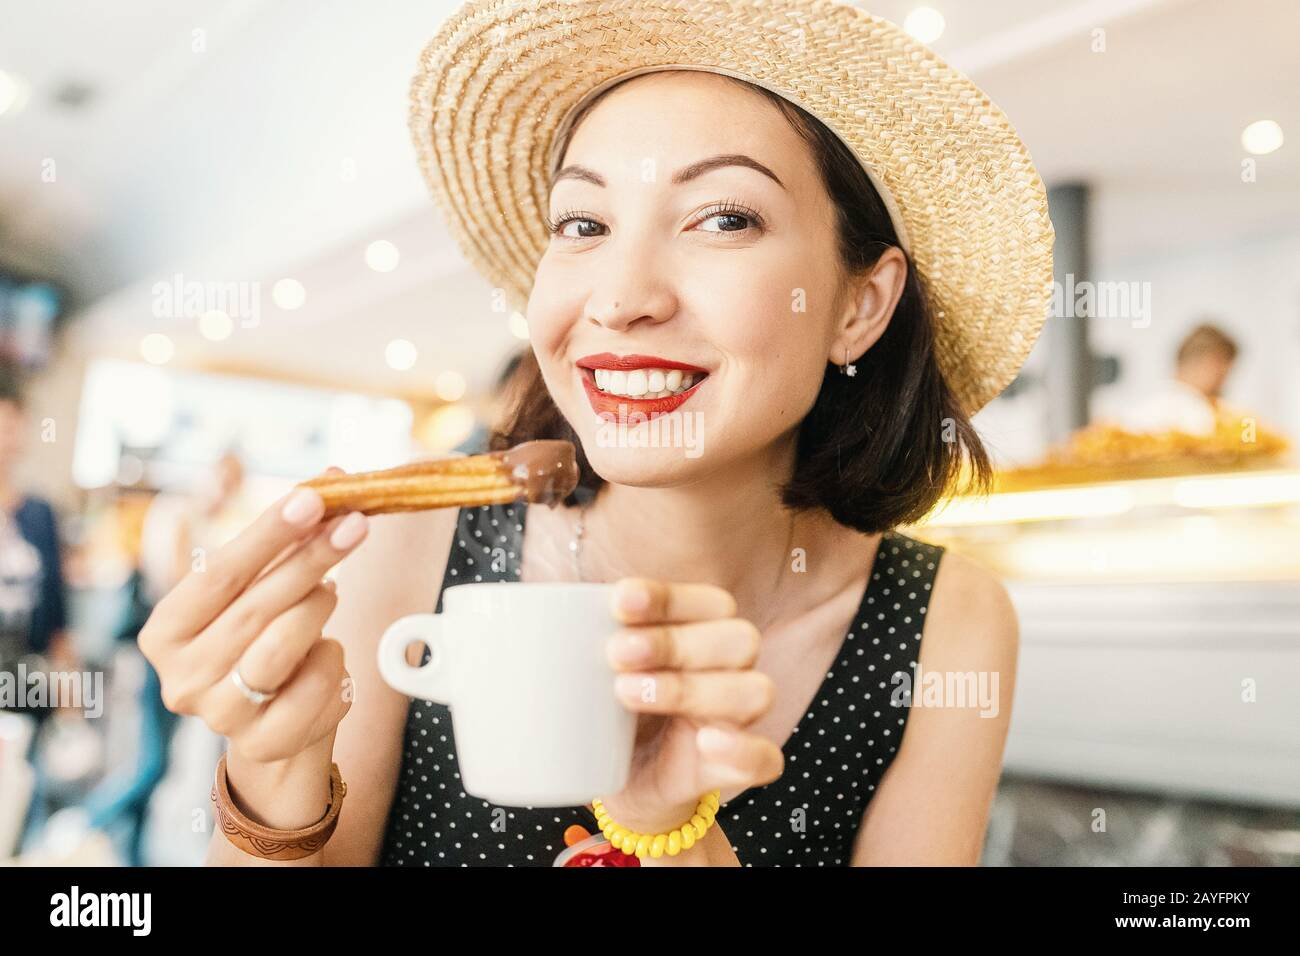 Happy Cheerful girl in hat eating traditional spanish delicious churros, a fried pastry with chocolate in cafe in spain Stock Photo